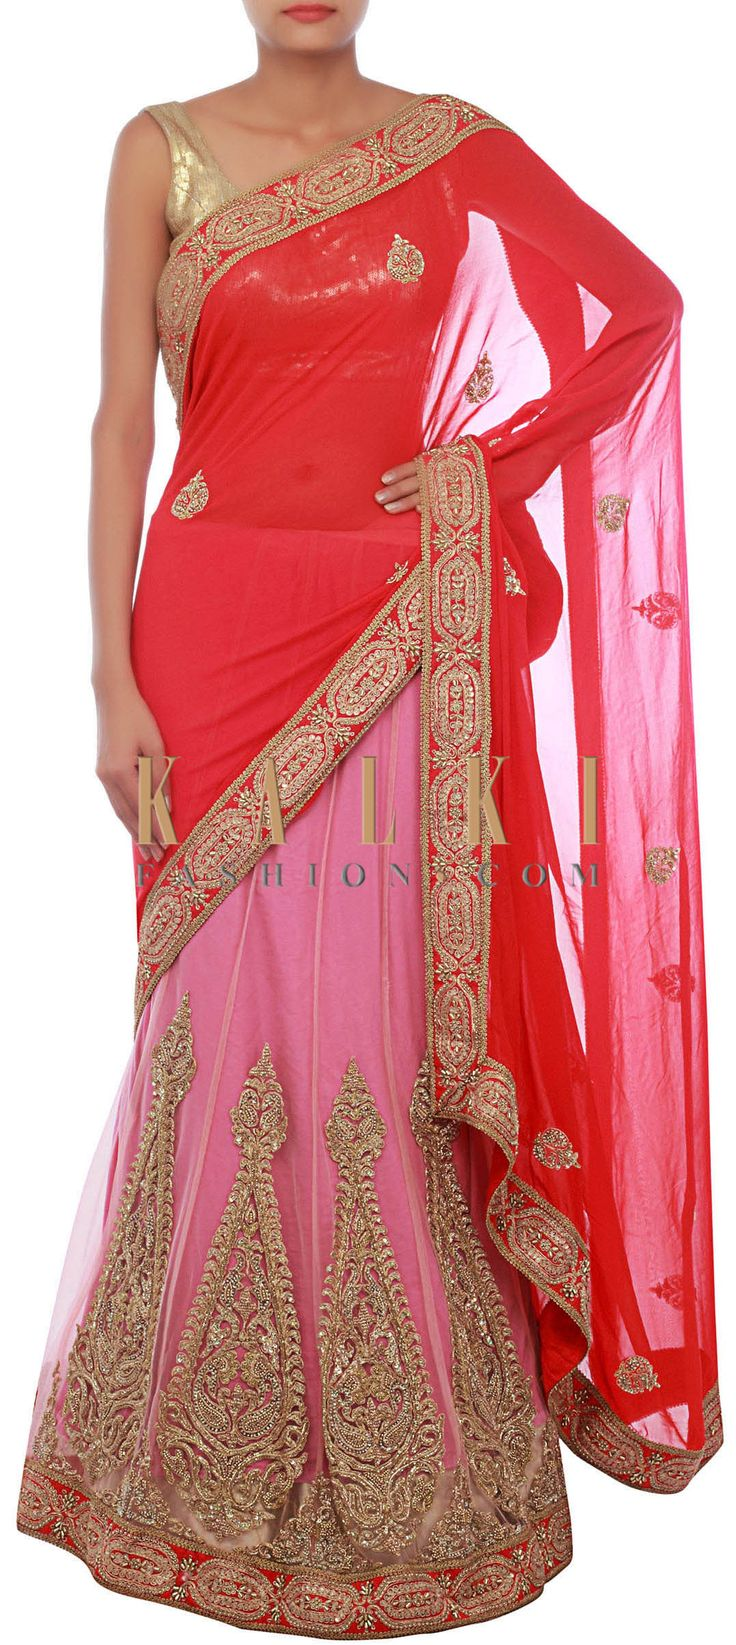 Buy Online from the link below. We ship worldwide (Free Shipping over US$100) http://www.kalkifashion.com/pink-and-red-lehenga-saree-embellished-in-zardosi-and-kardana-embroidery-only-on-kalki.html